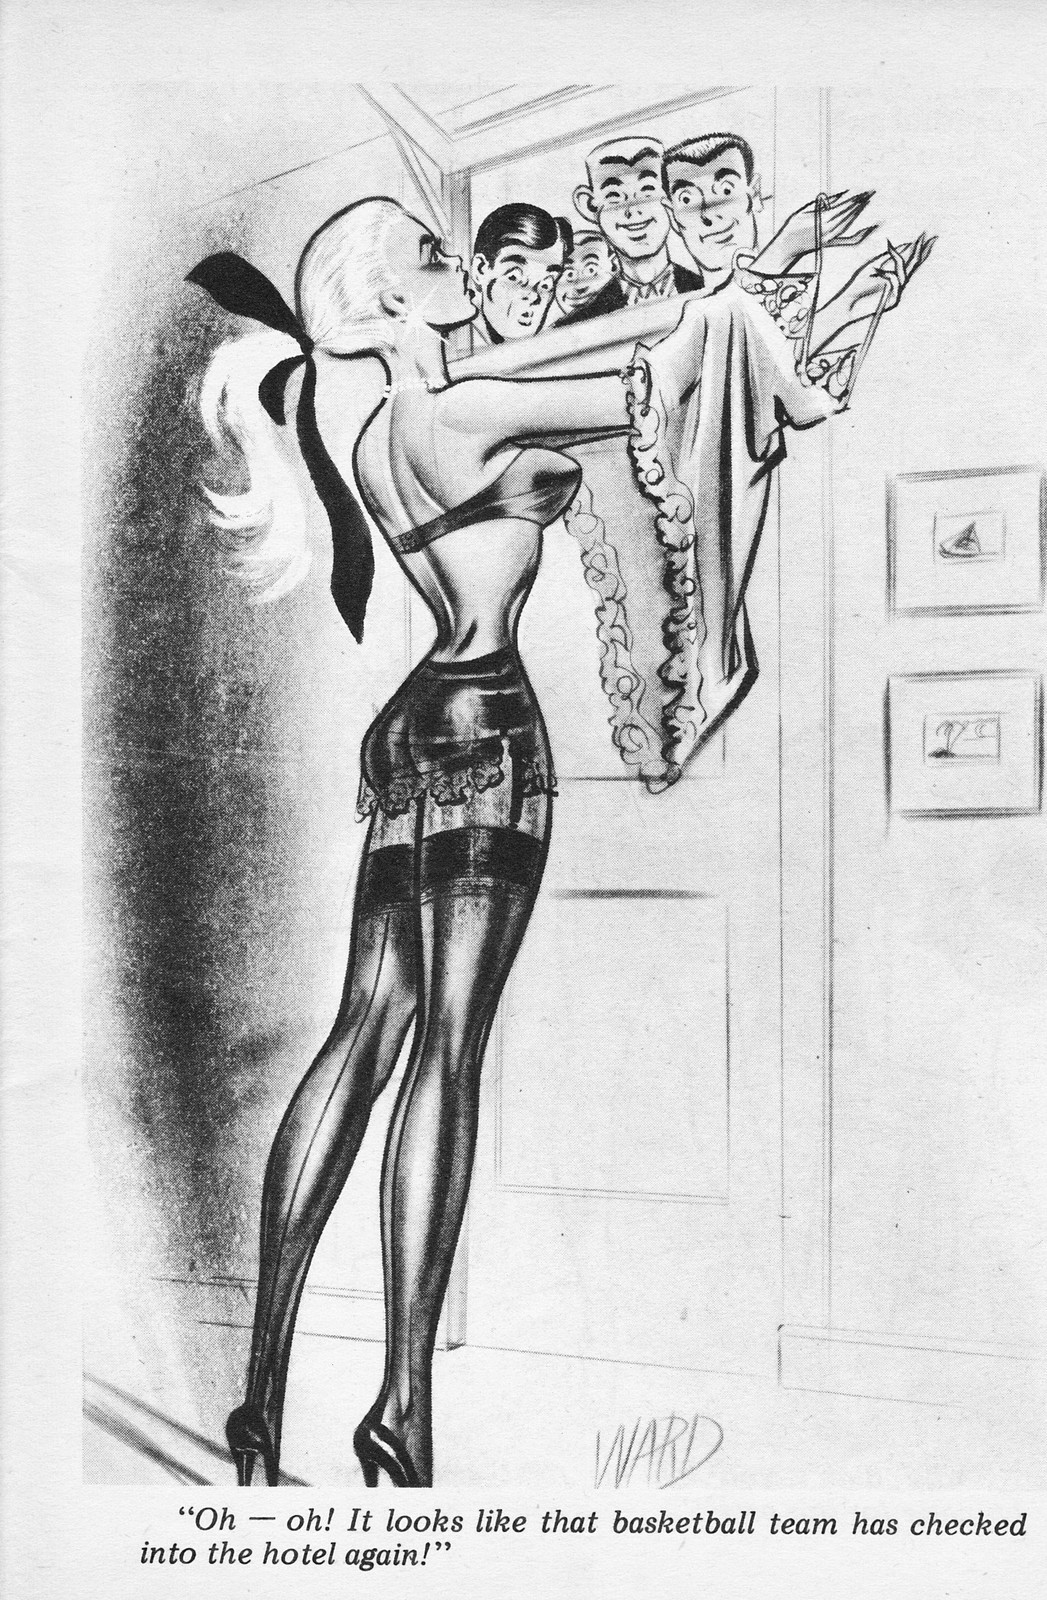 Frank Forte: Vintage sexy pin-up cartoons from HUMORAMA